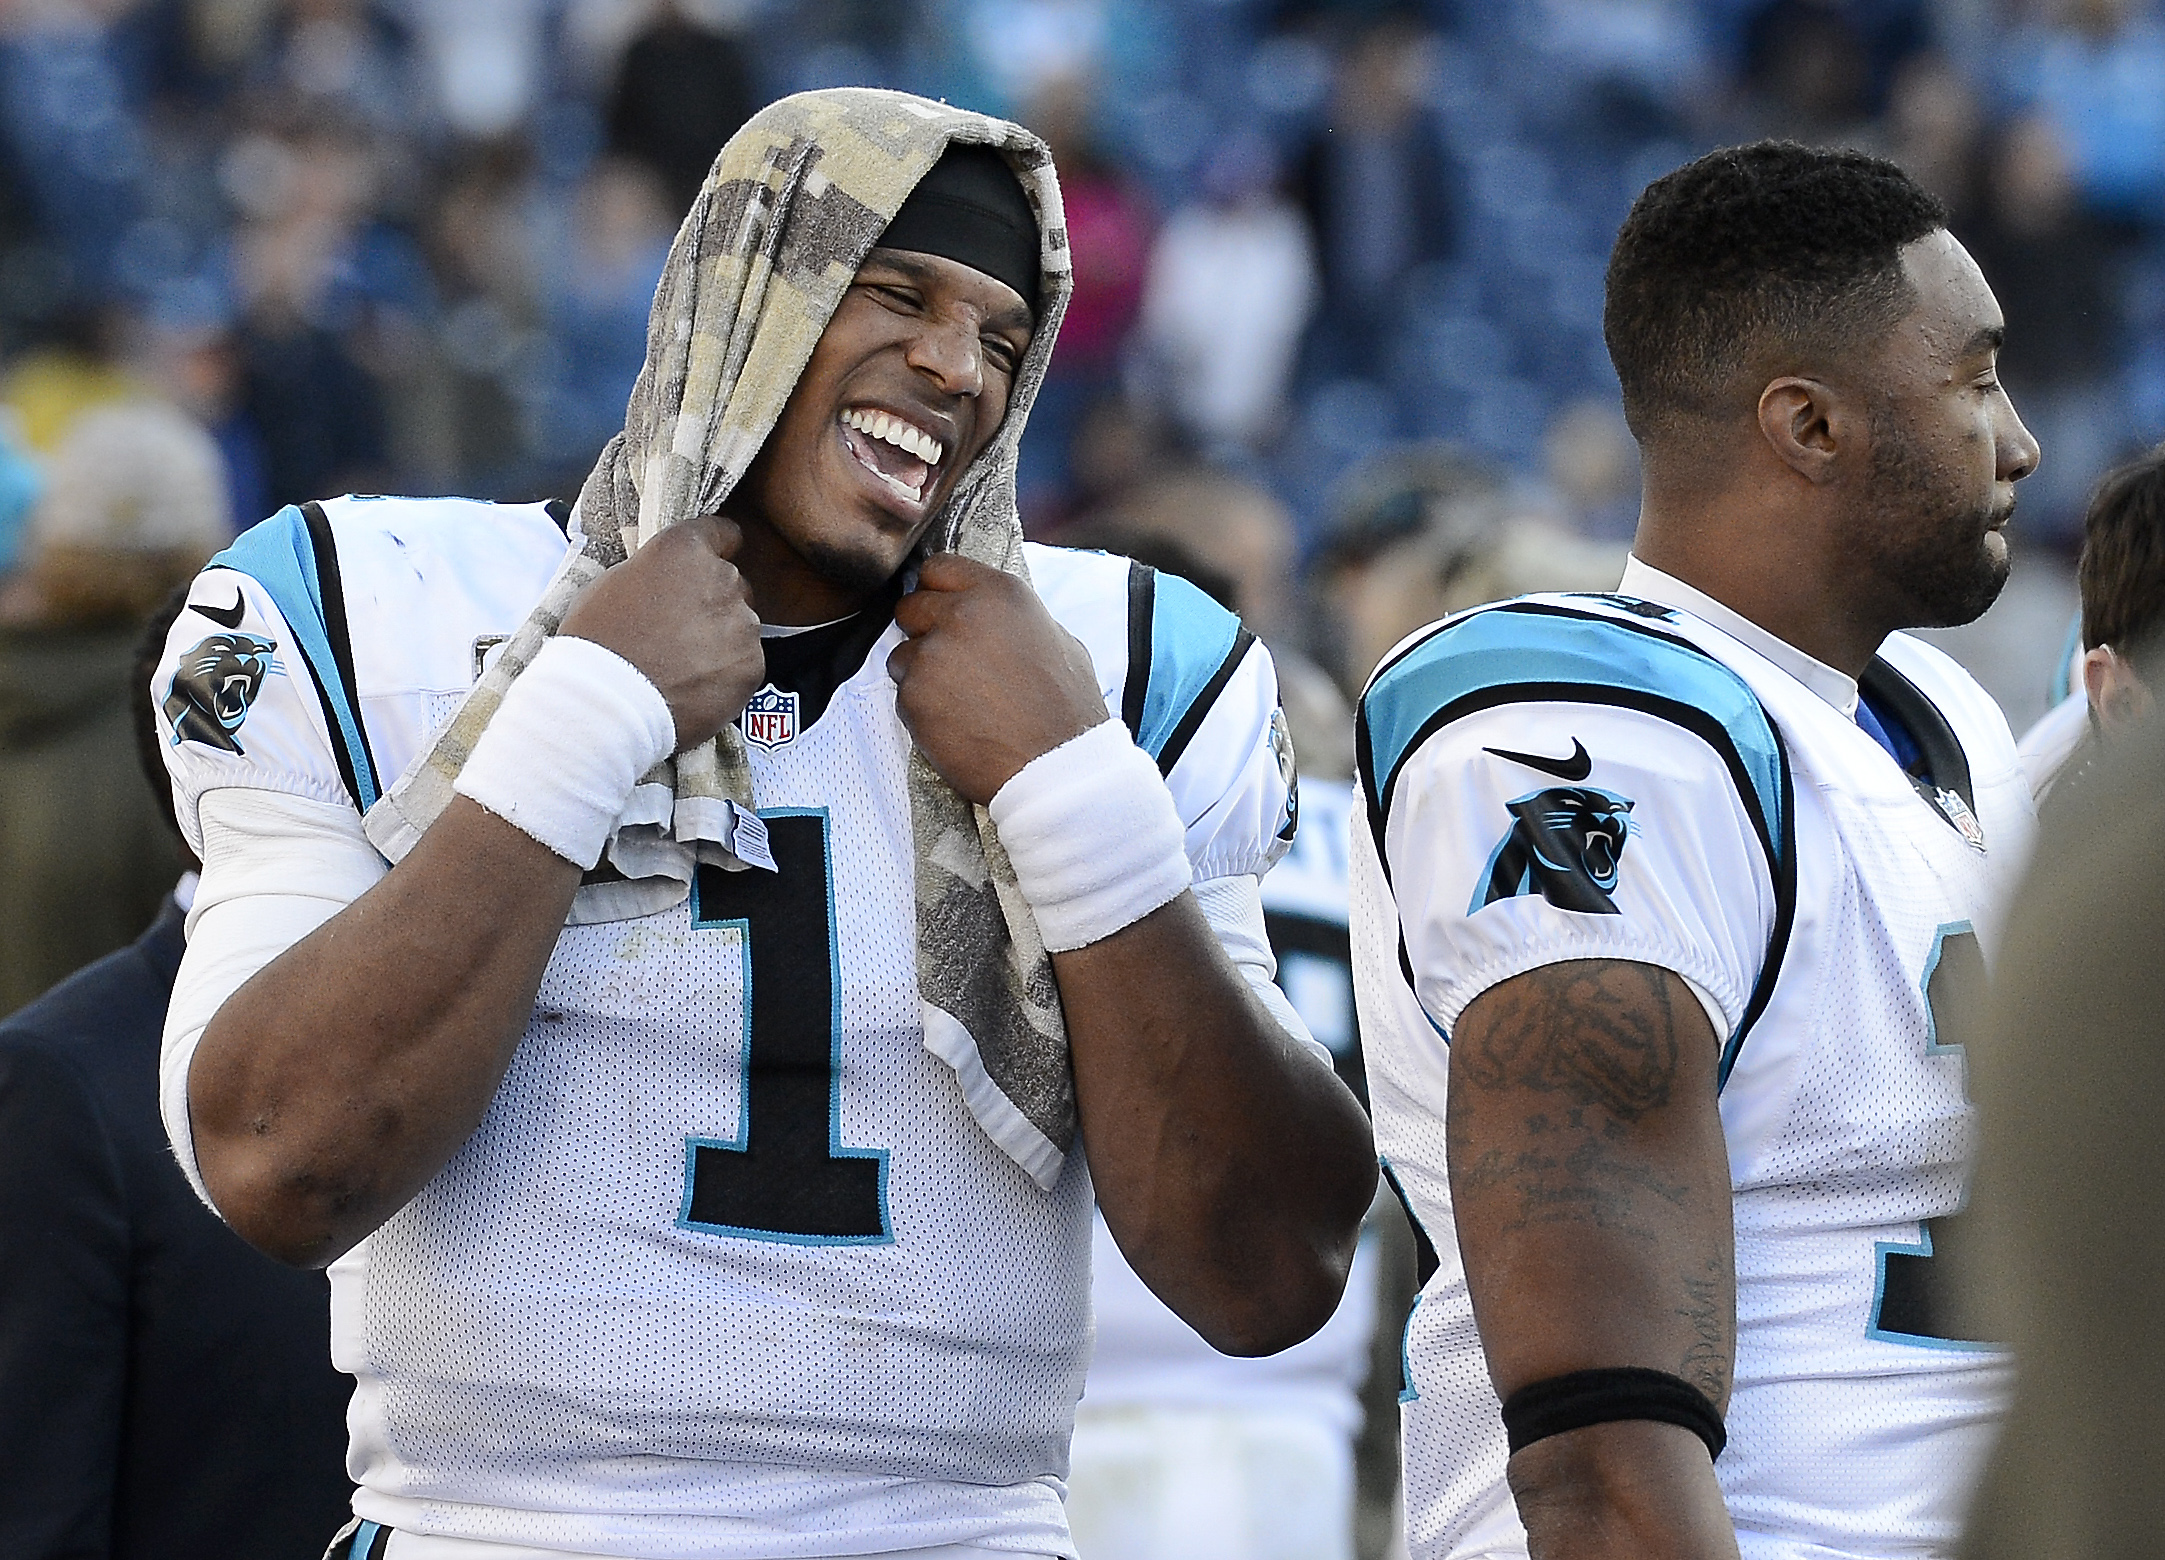 Carolina Panthers quarterback Cam Newton (1) laughs on the sideline in the closing minutes of the fourth quarter in the Panthers' 27-10 win over the Tennessee Titans in an NFL football game Sunday, Nov. 15, 2015, in Nashville, Tenn. (Mark Zaleski/AP)